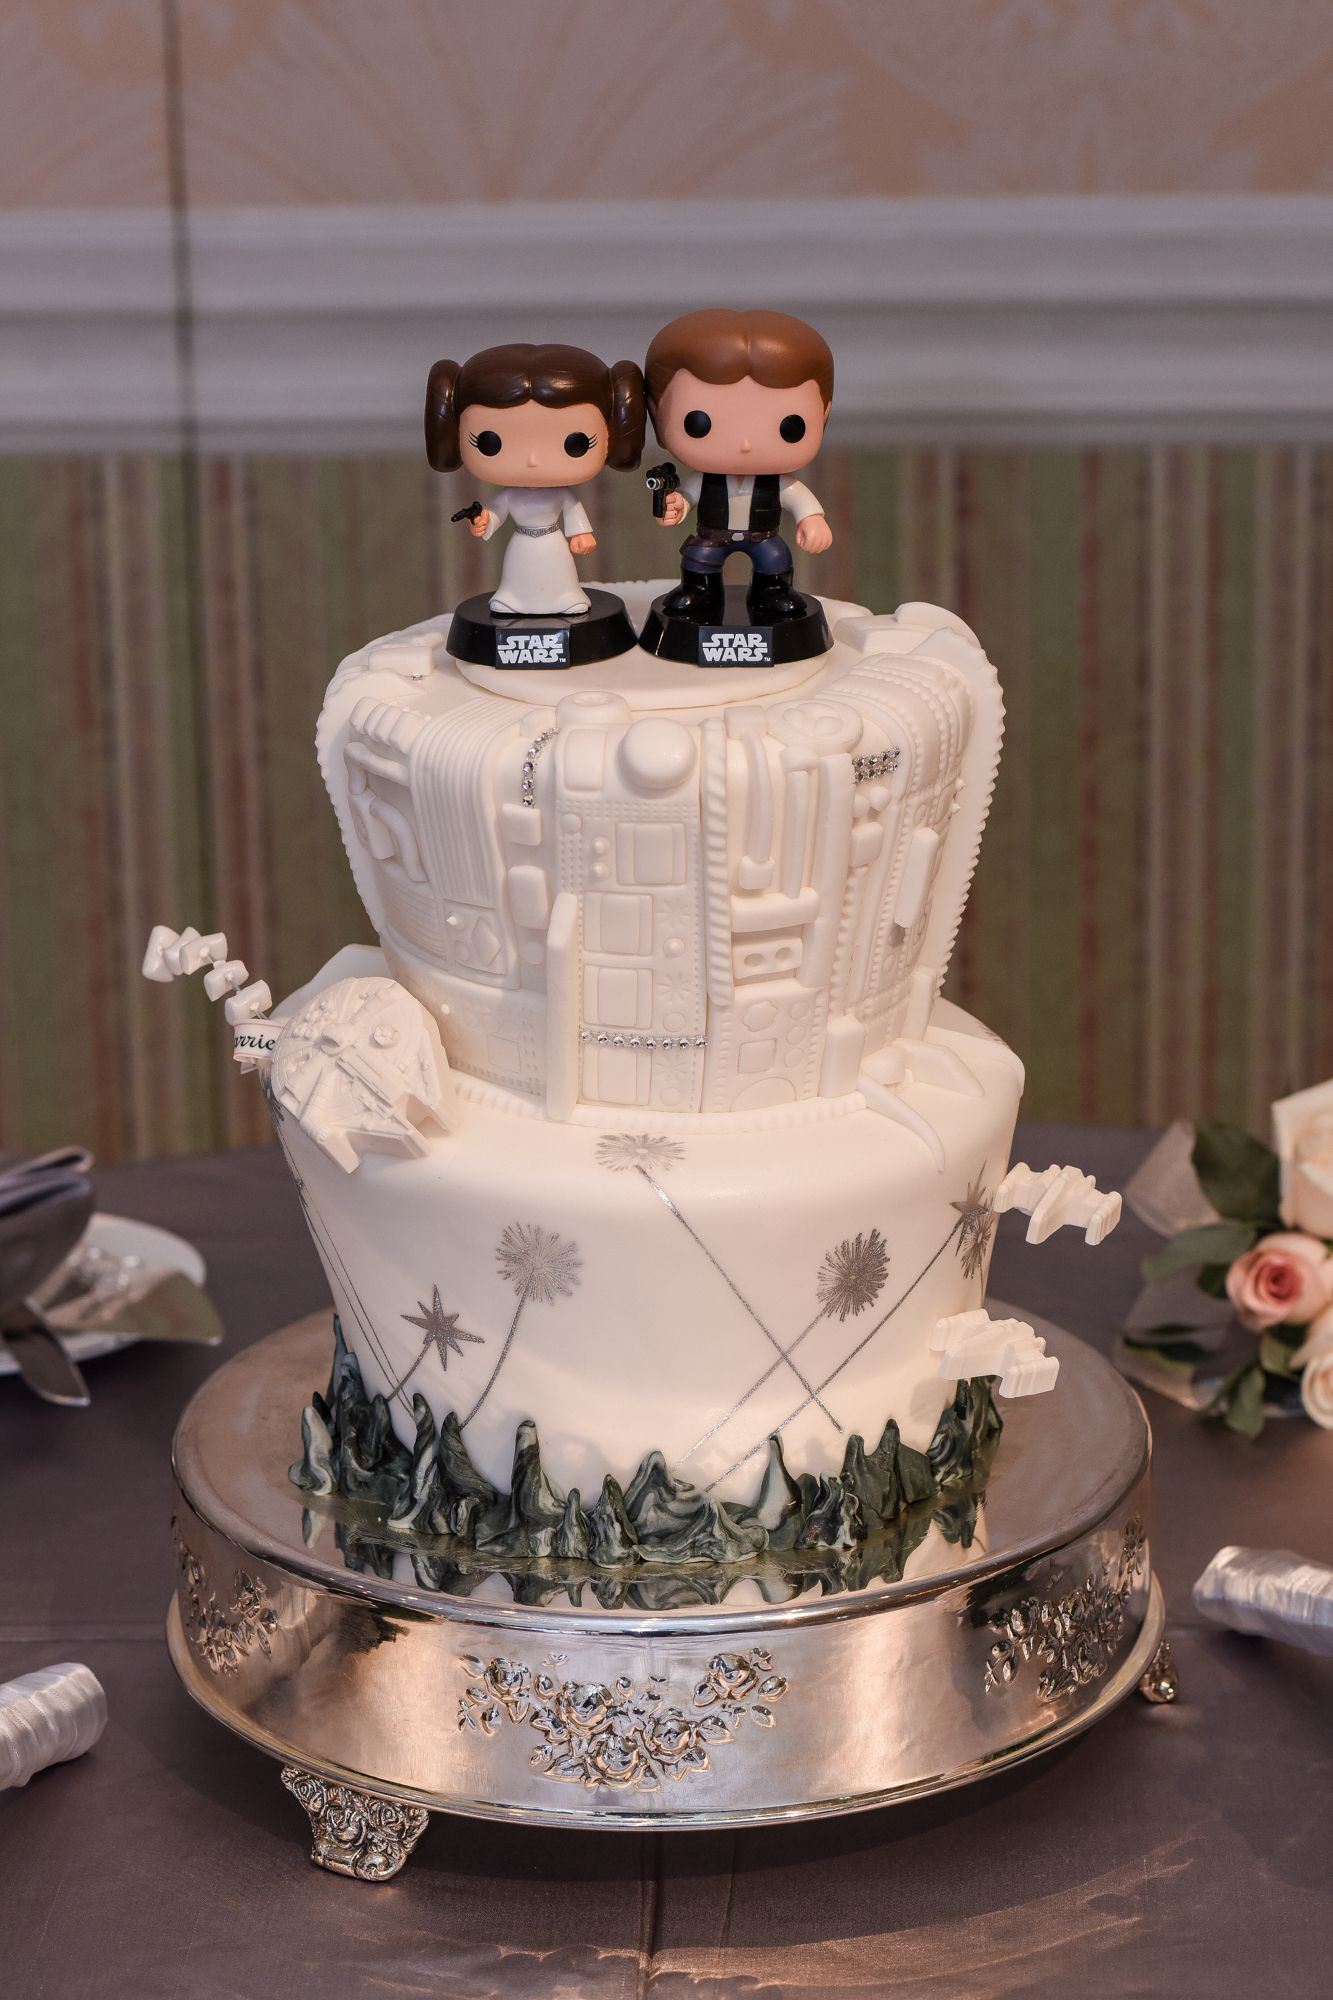 Star Wars Wedding Cake.The Force Is Strong With This Star Wars Inspired Wedding Cake